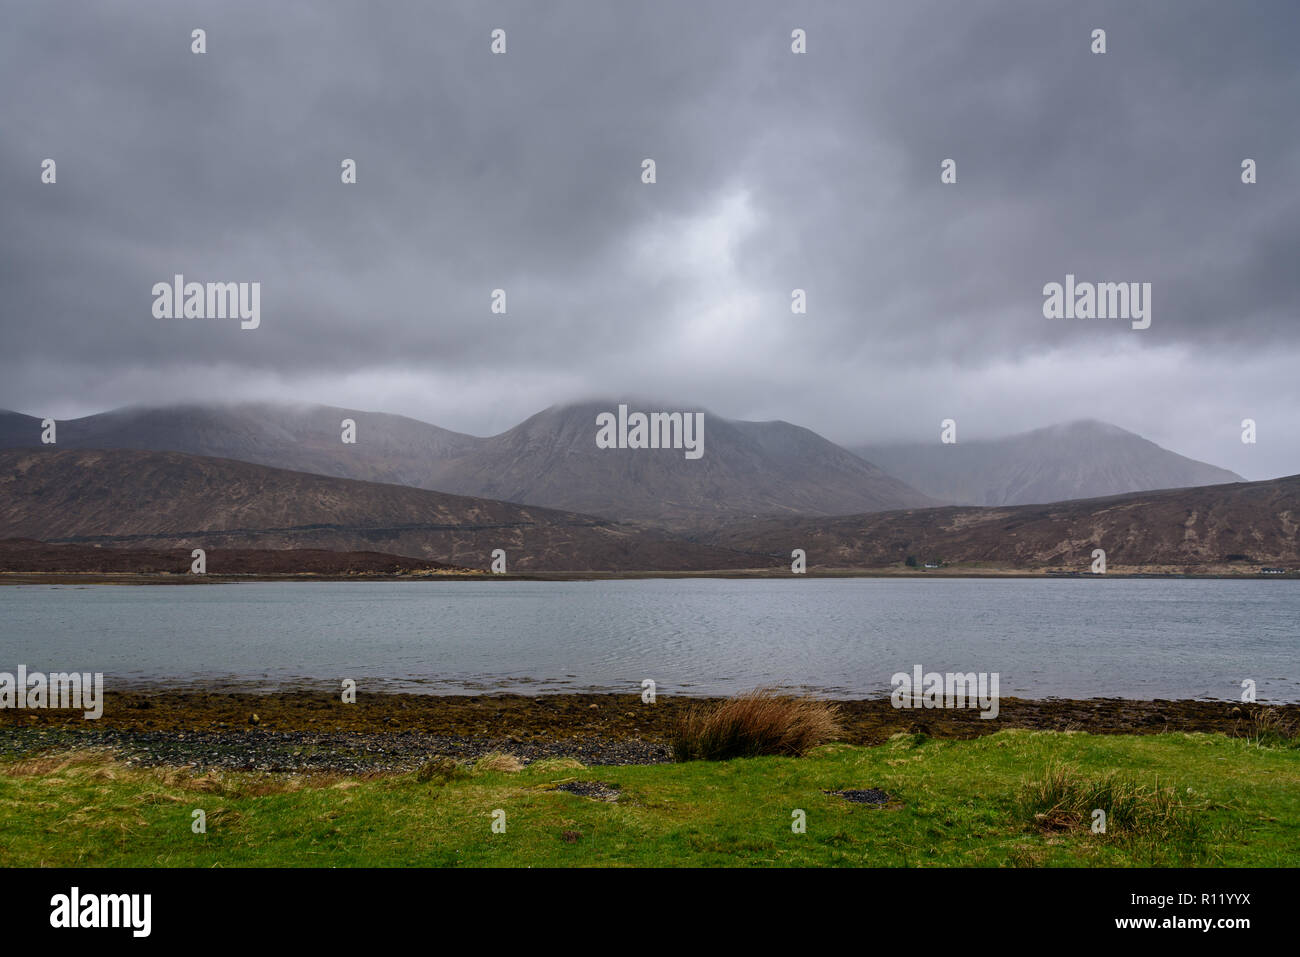 Breathtaking Scottish landscapes in autumn - beautiful moody images from most iconic locations on the Isle of Skye - popular tourist destination Stock Photo